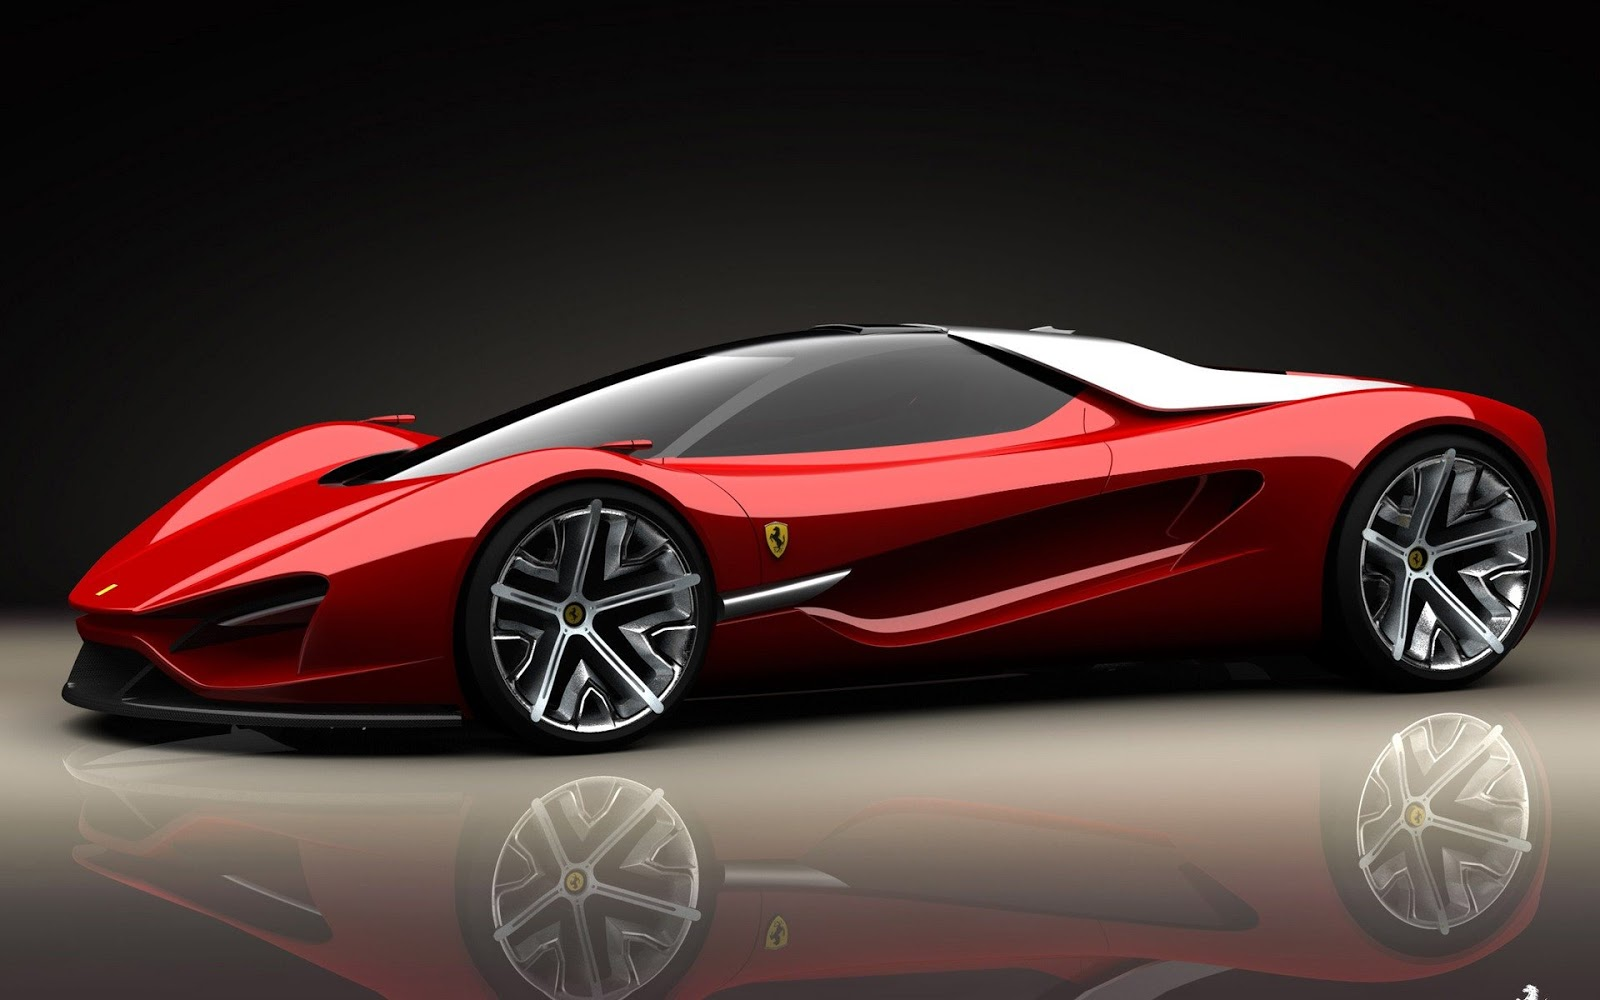 red ferrari wallpaper hd - photo #10